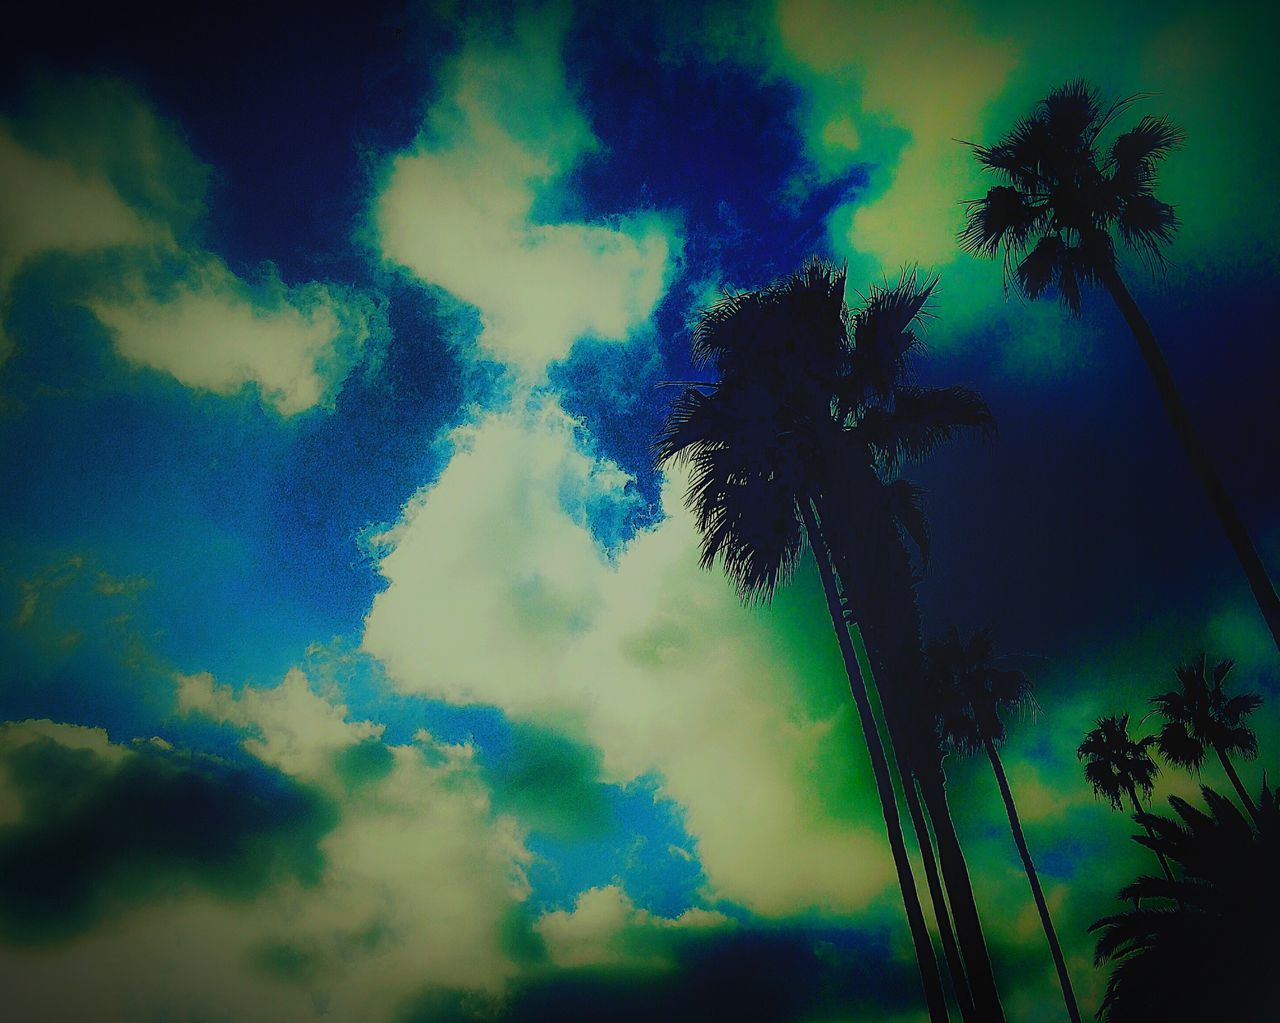 Clouds Gazing Palm Trees Picoftheday #photooftheday #photography #iphonesia #pikturdis #WeAreTheCulture #jj_forum #webstagram #world #streetstyle #shootinupny #statigram #randomfreshness #tbt #twitter #nycphotography #nyc #les #igdaily #everybodystreet #vsco #streetphotography #s Beach Photography BaSeKVisuals Agameoftones EyeEm Sunsetsniper Sunset 50shadesofcolors Eyeem Beach Shots Streetart #street #streetphotography #tagsforlikes #sprayart #urban #urbanart #urbanwalls #wall #wallporn #graffitiigers #stencilart #art #graffiti #instagraffiti #instagood #artwork #mural #graffitiporn #photooftheday #stencil #streetartistry #photograp Sunsets Beauty In Nature Venicelife California ShotOniPhone6 Colorsofthesky Fatalframes Beach Colour Of Life Can'teditunlessushootin Taking Photos Gods Light EyeEm Best Shots - Landscape m